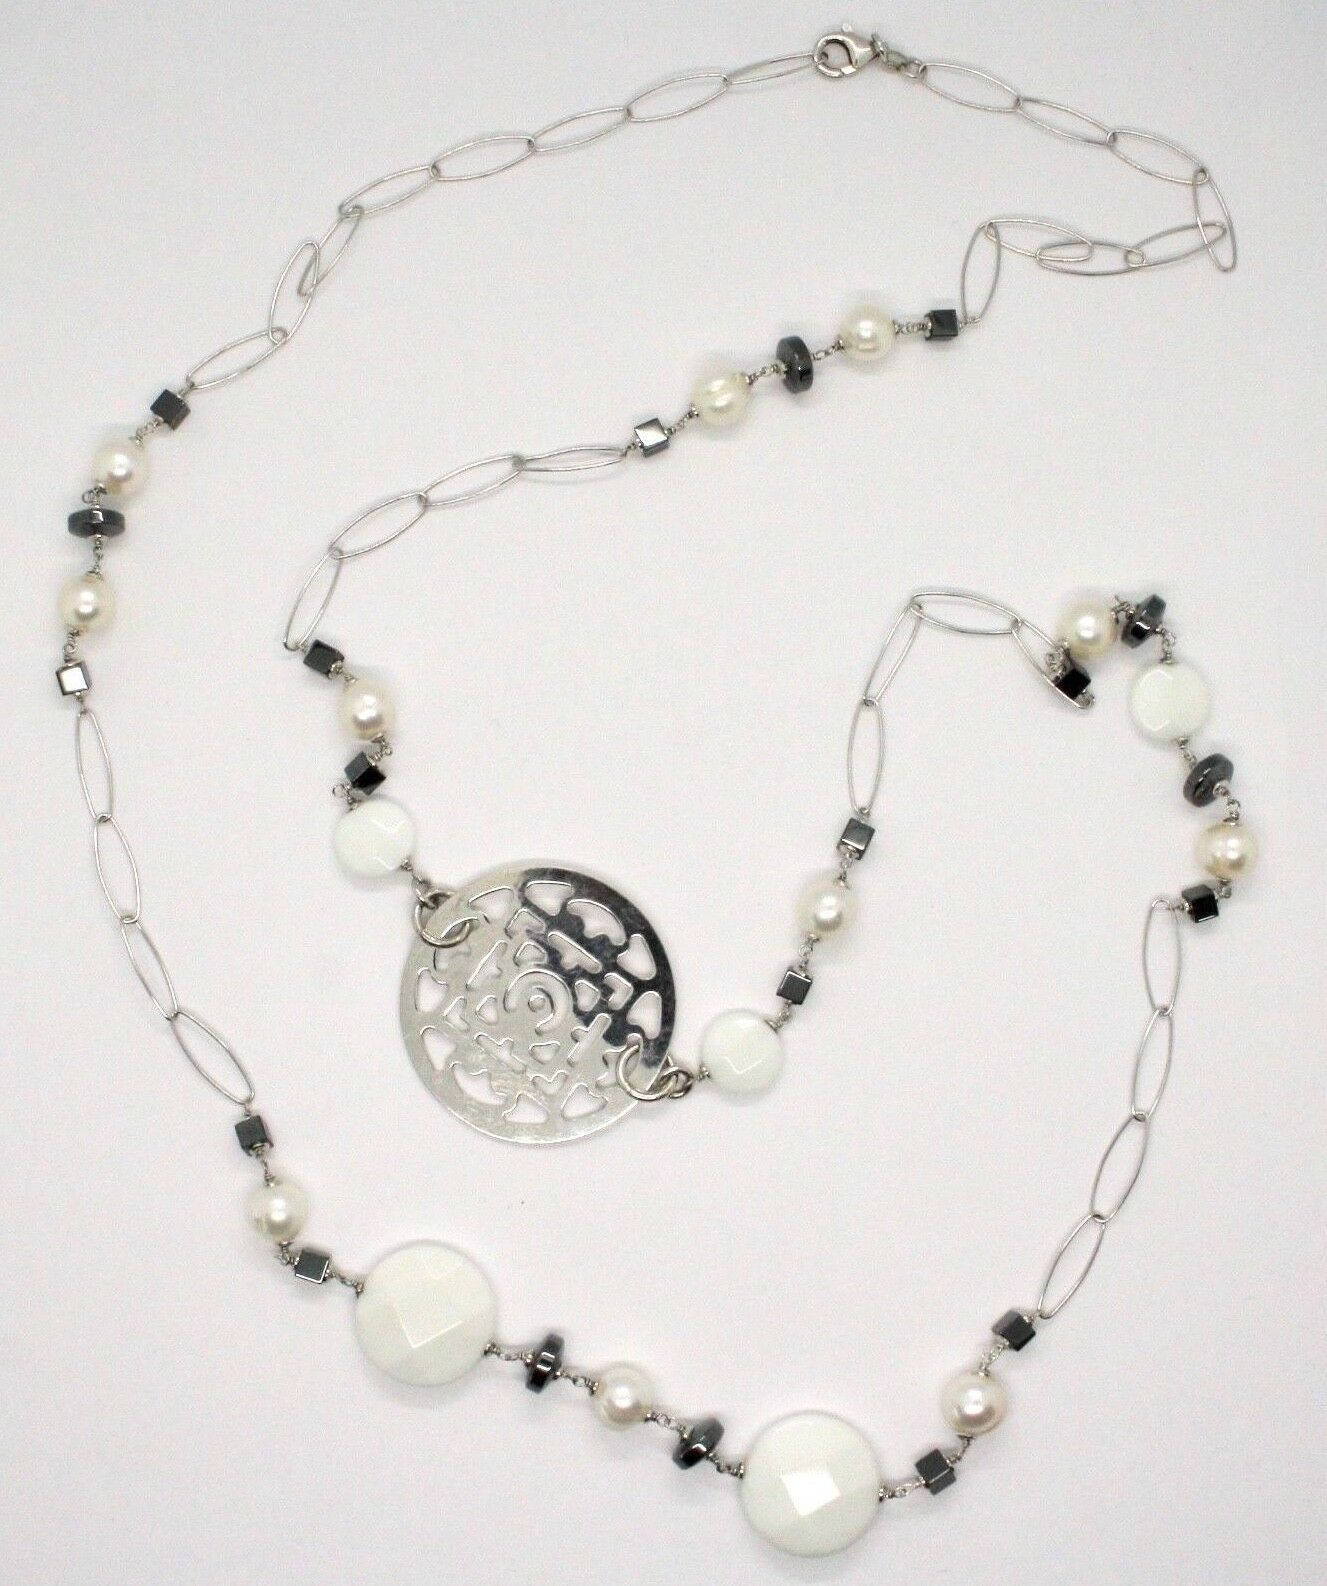 Long Necklace 1 MT Silver 925 with Hematite Agate and Pearls Made in Italy